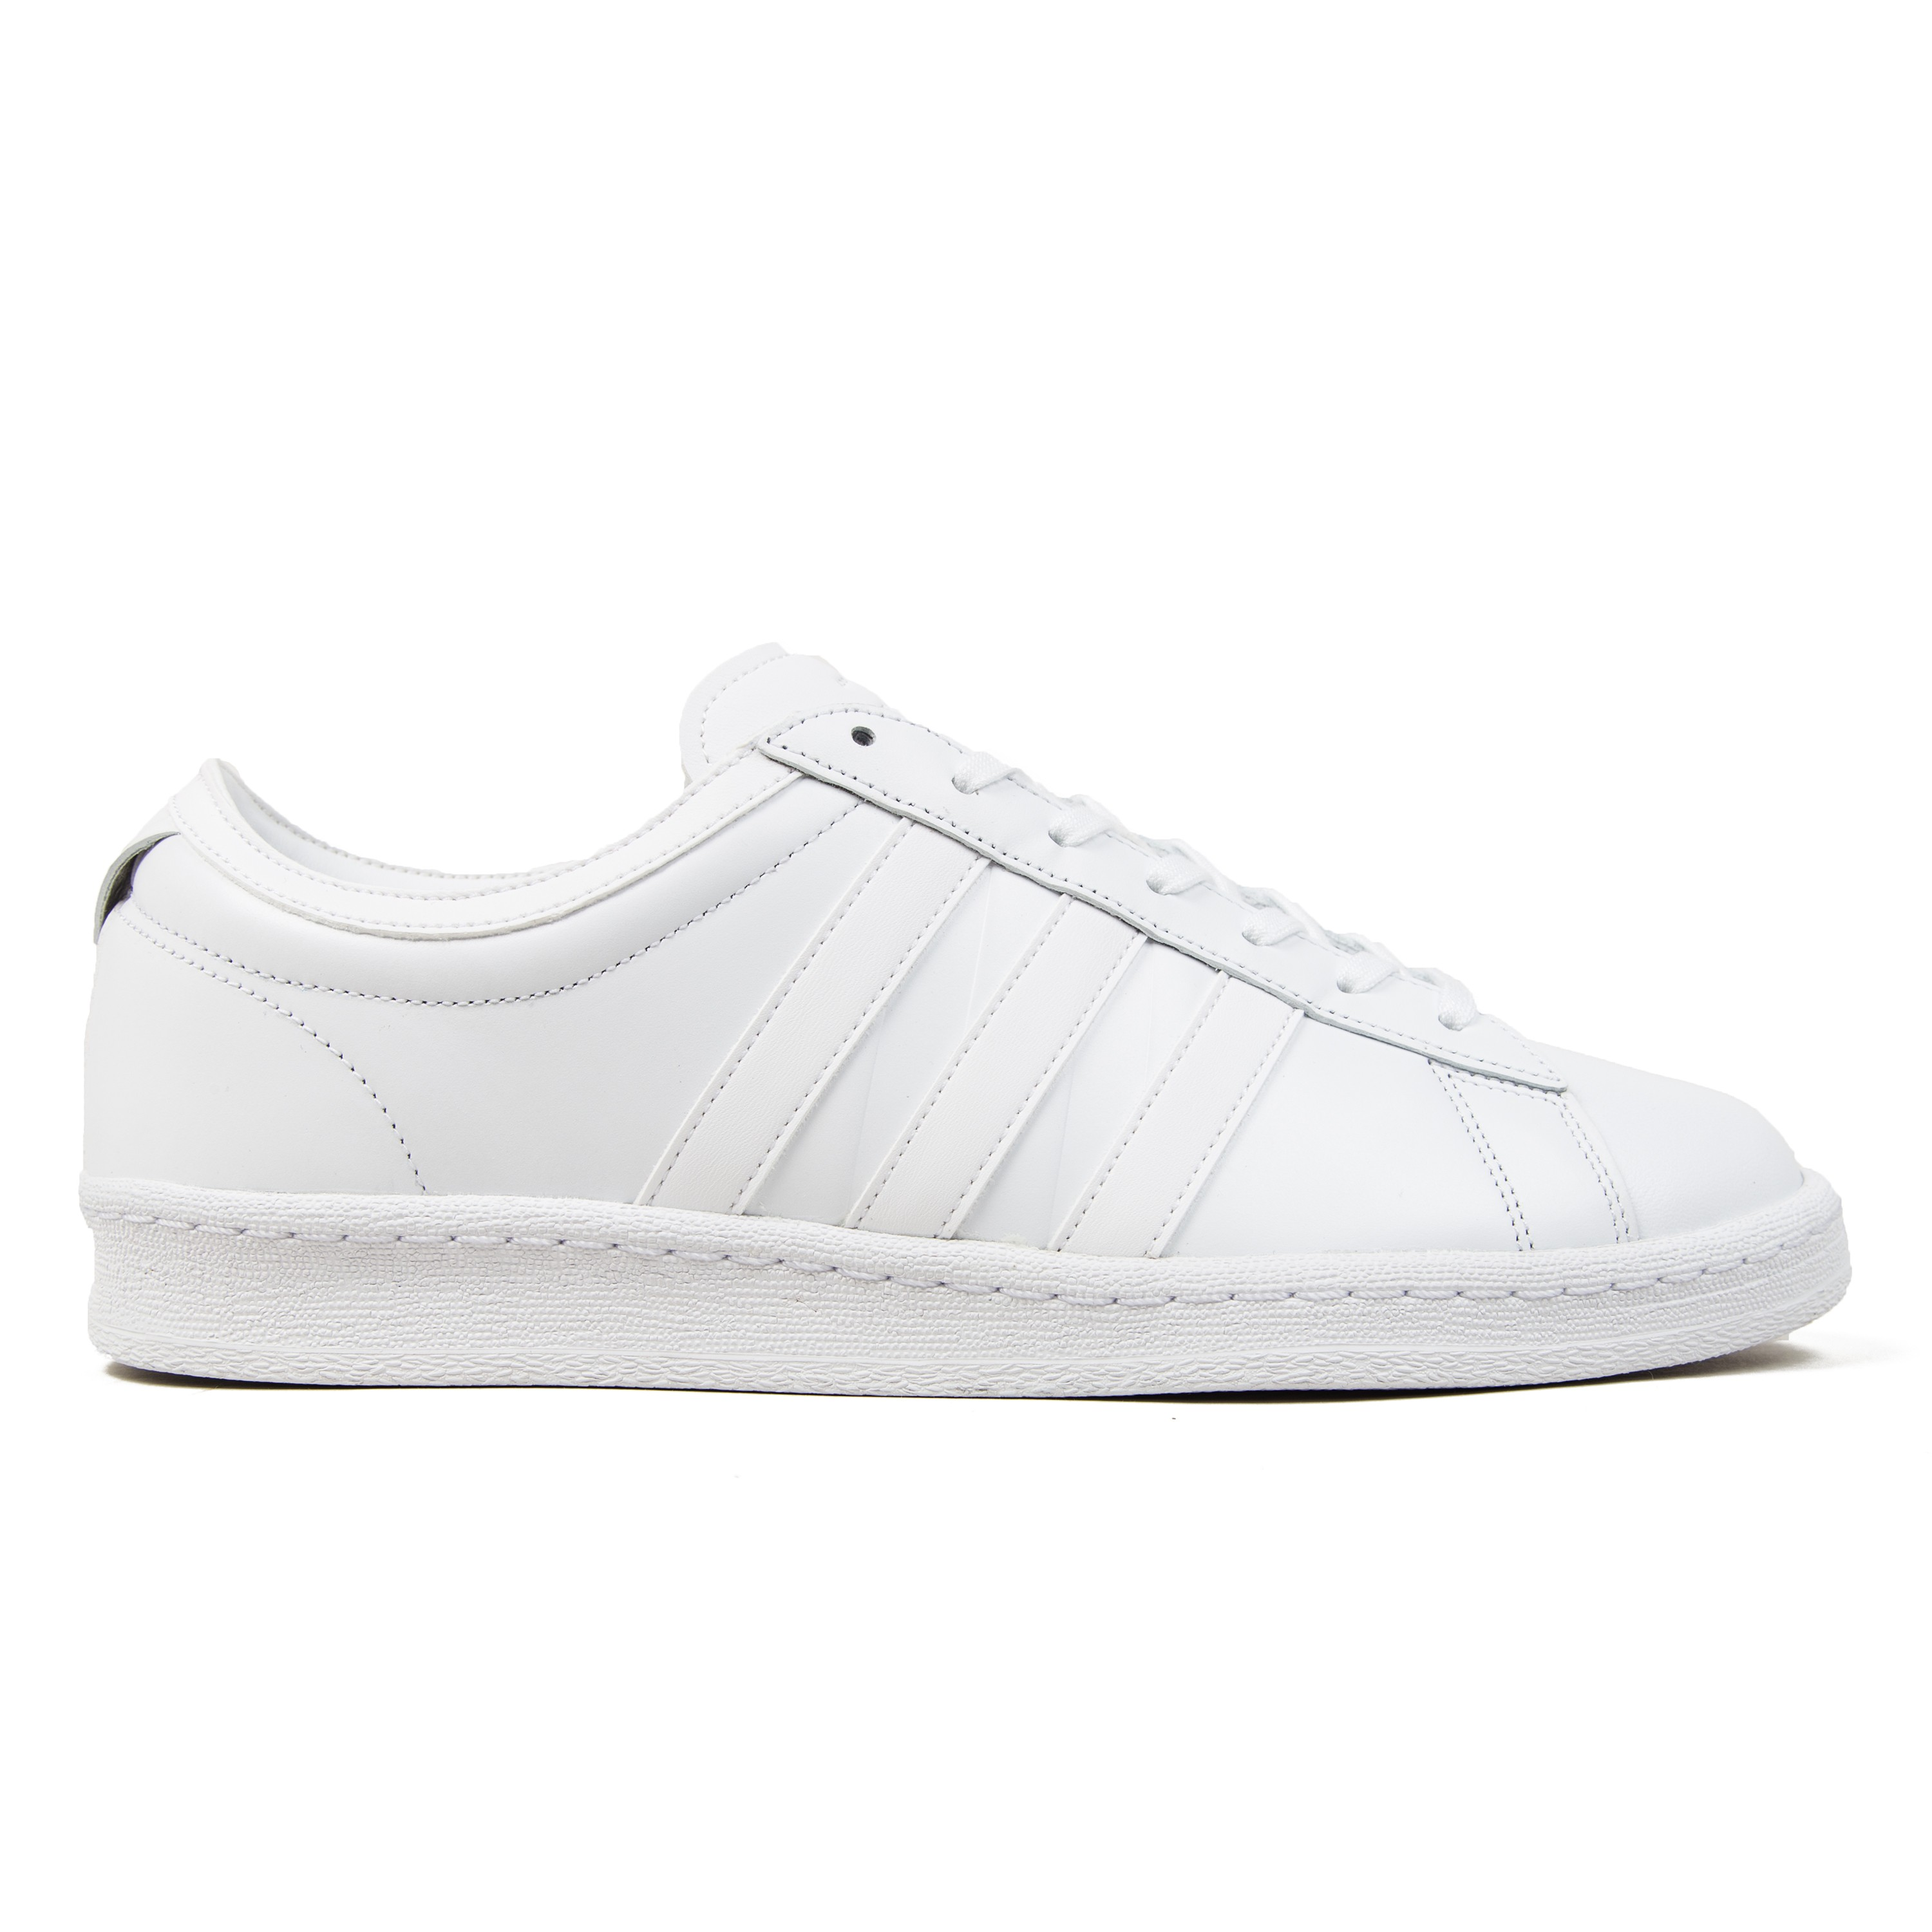 97acb4f995af adidas Originals x White Mountaineering Supergrip (Footwear White ...